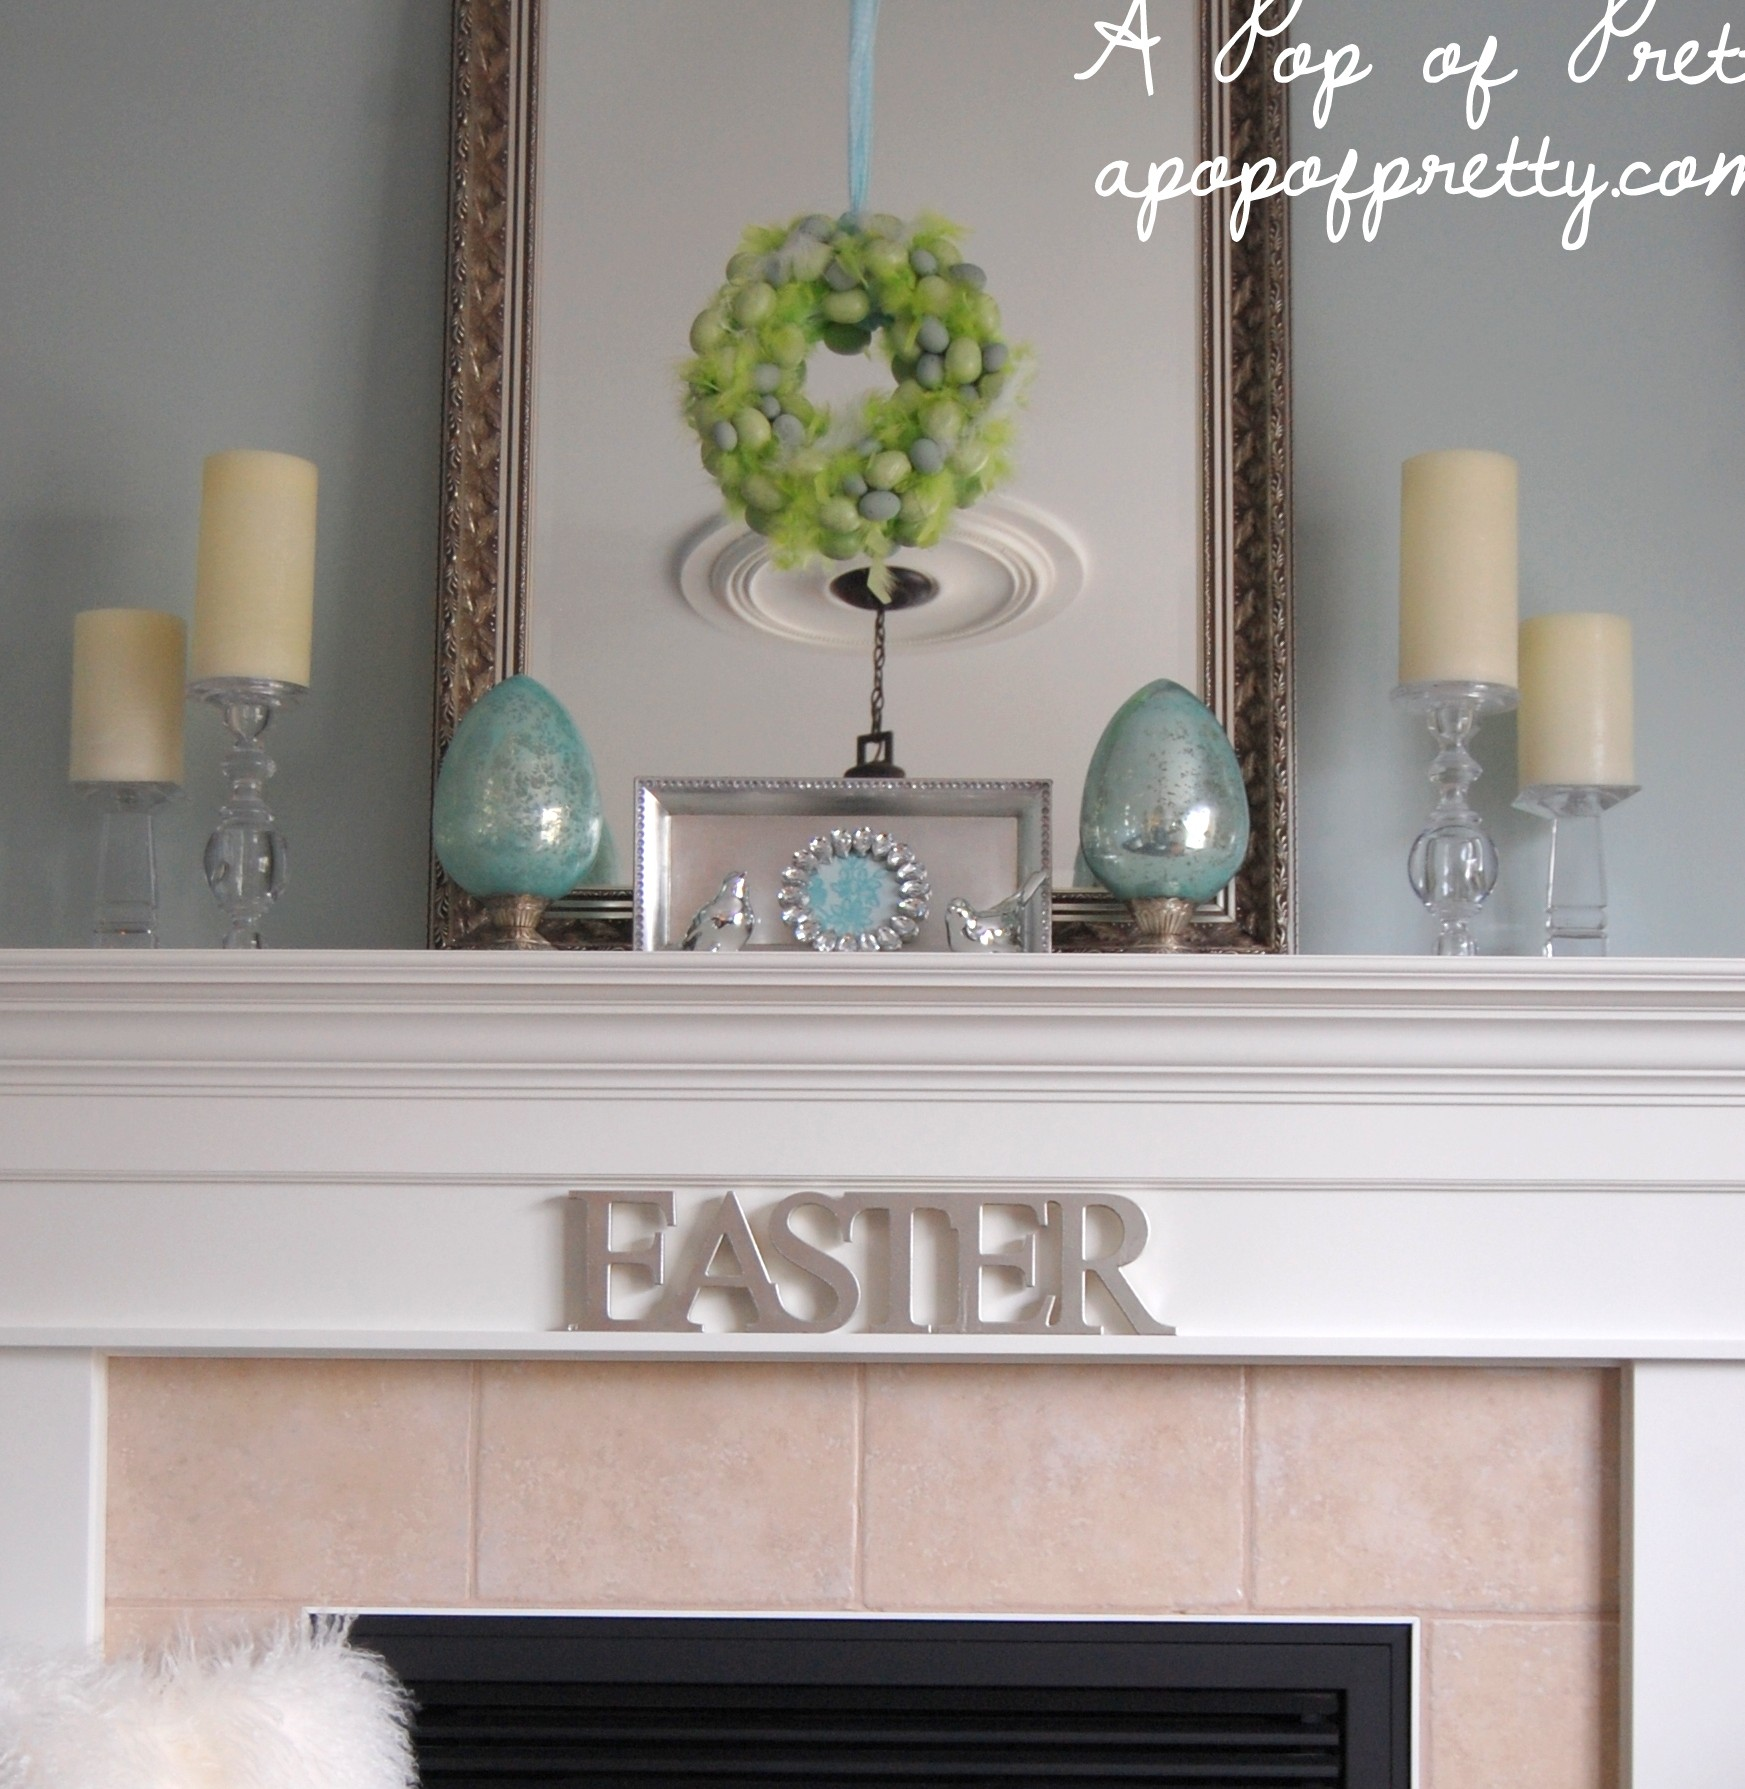 Decorating A Mantel easter decorating ideas: decorate a simple easter mantel! - a pop